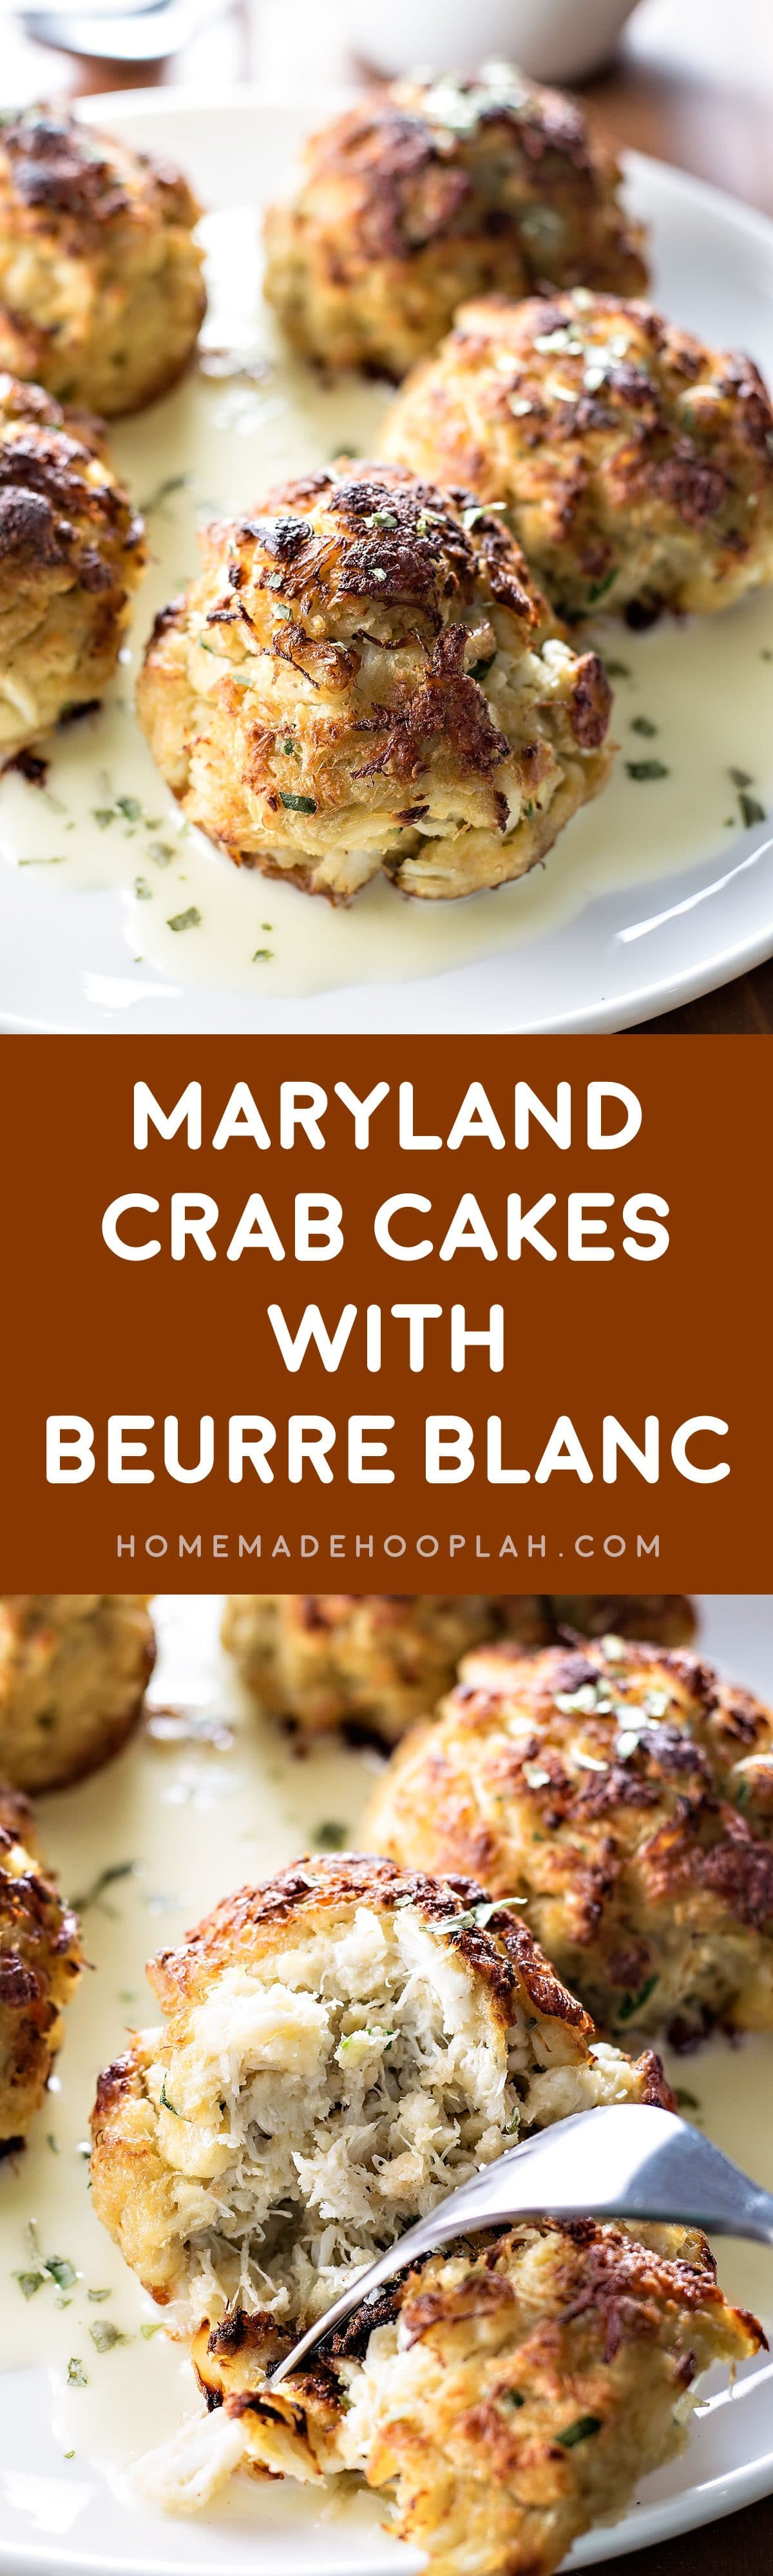 maryland crab cakes with beurre blanc - homemade hooplah